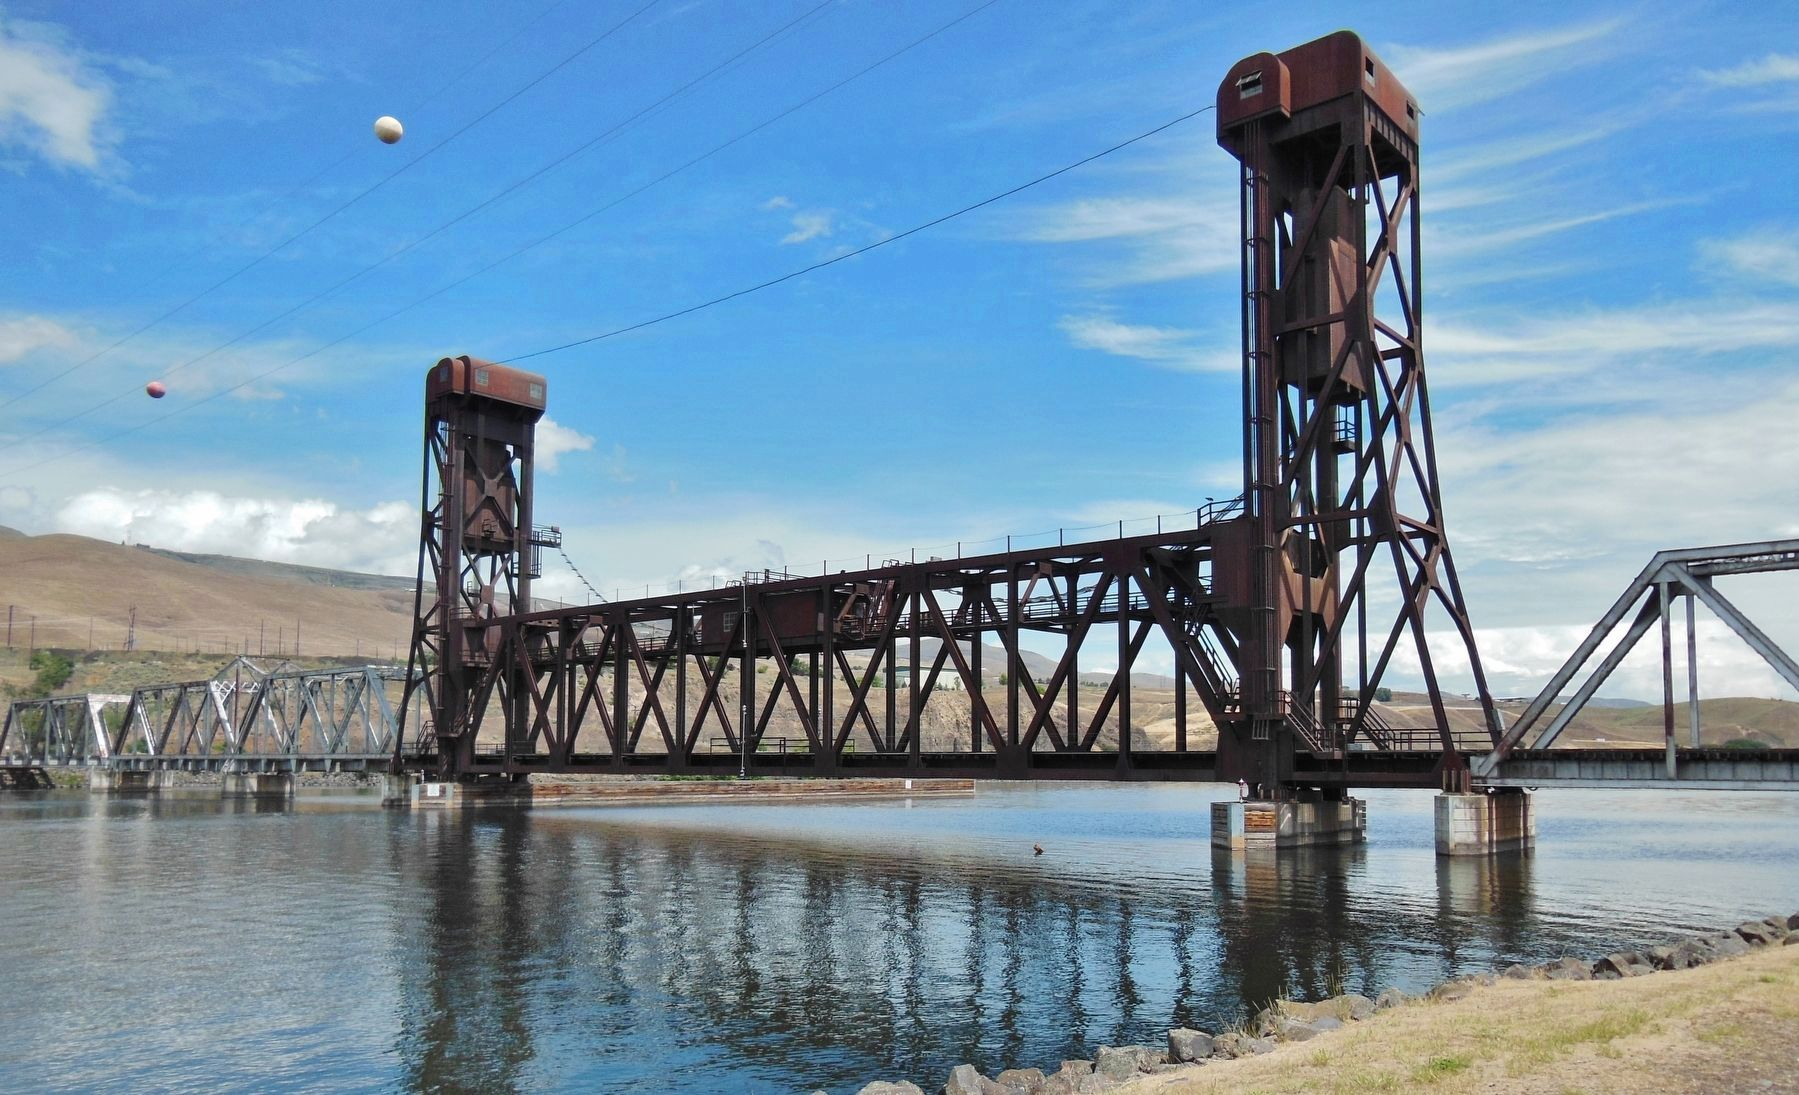 18th St. Bridge (<i>view across Clearwater River from west side of bridge</i>) image. Click for full size.